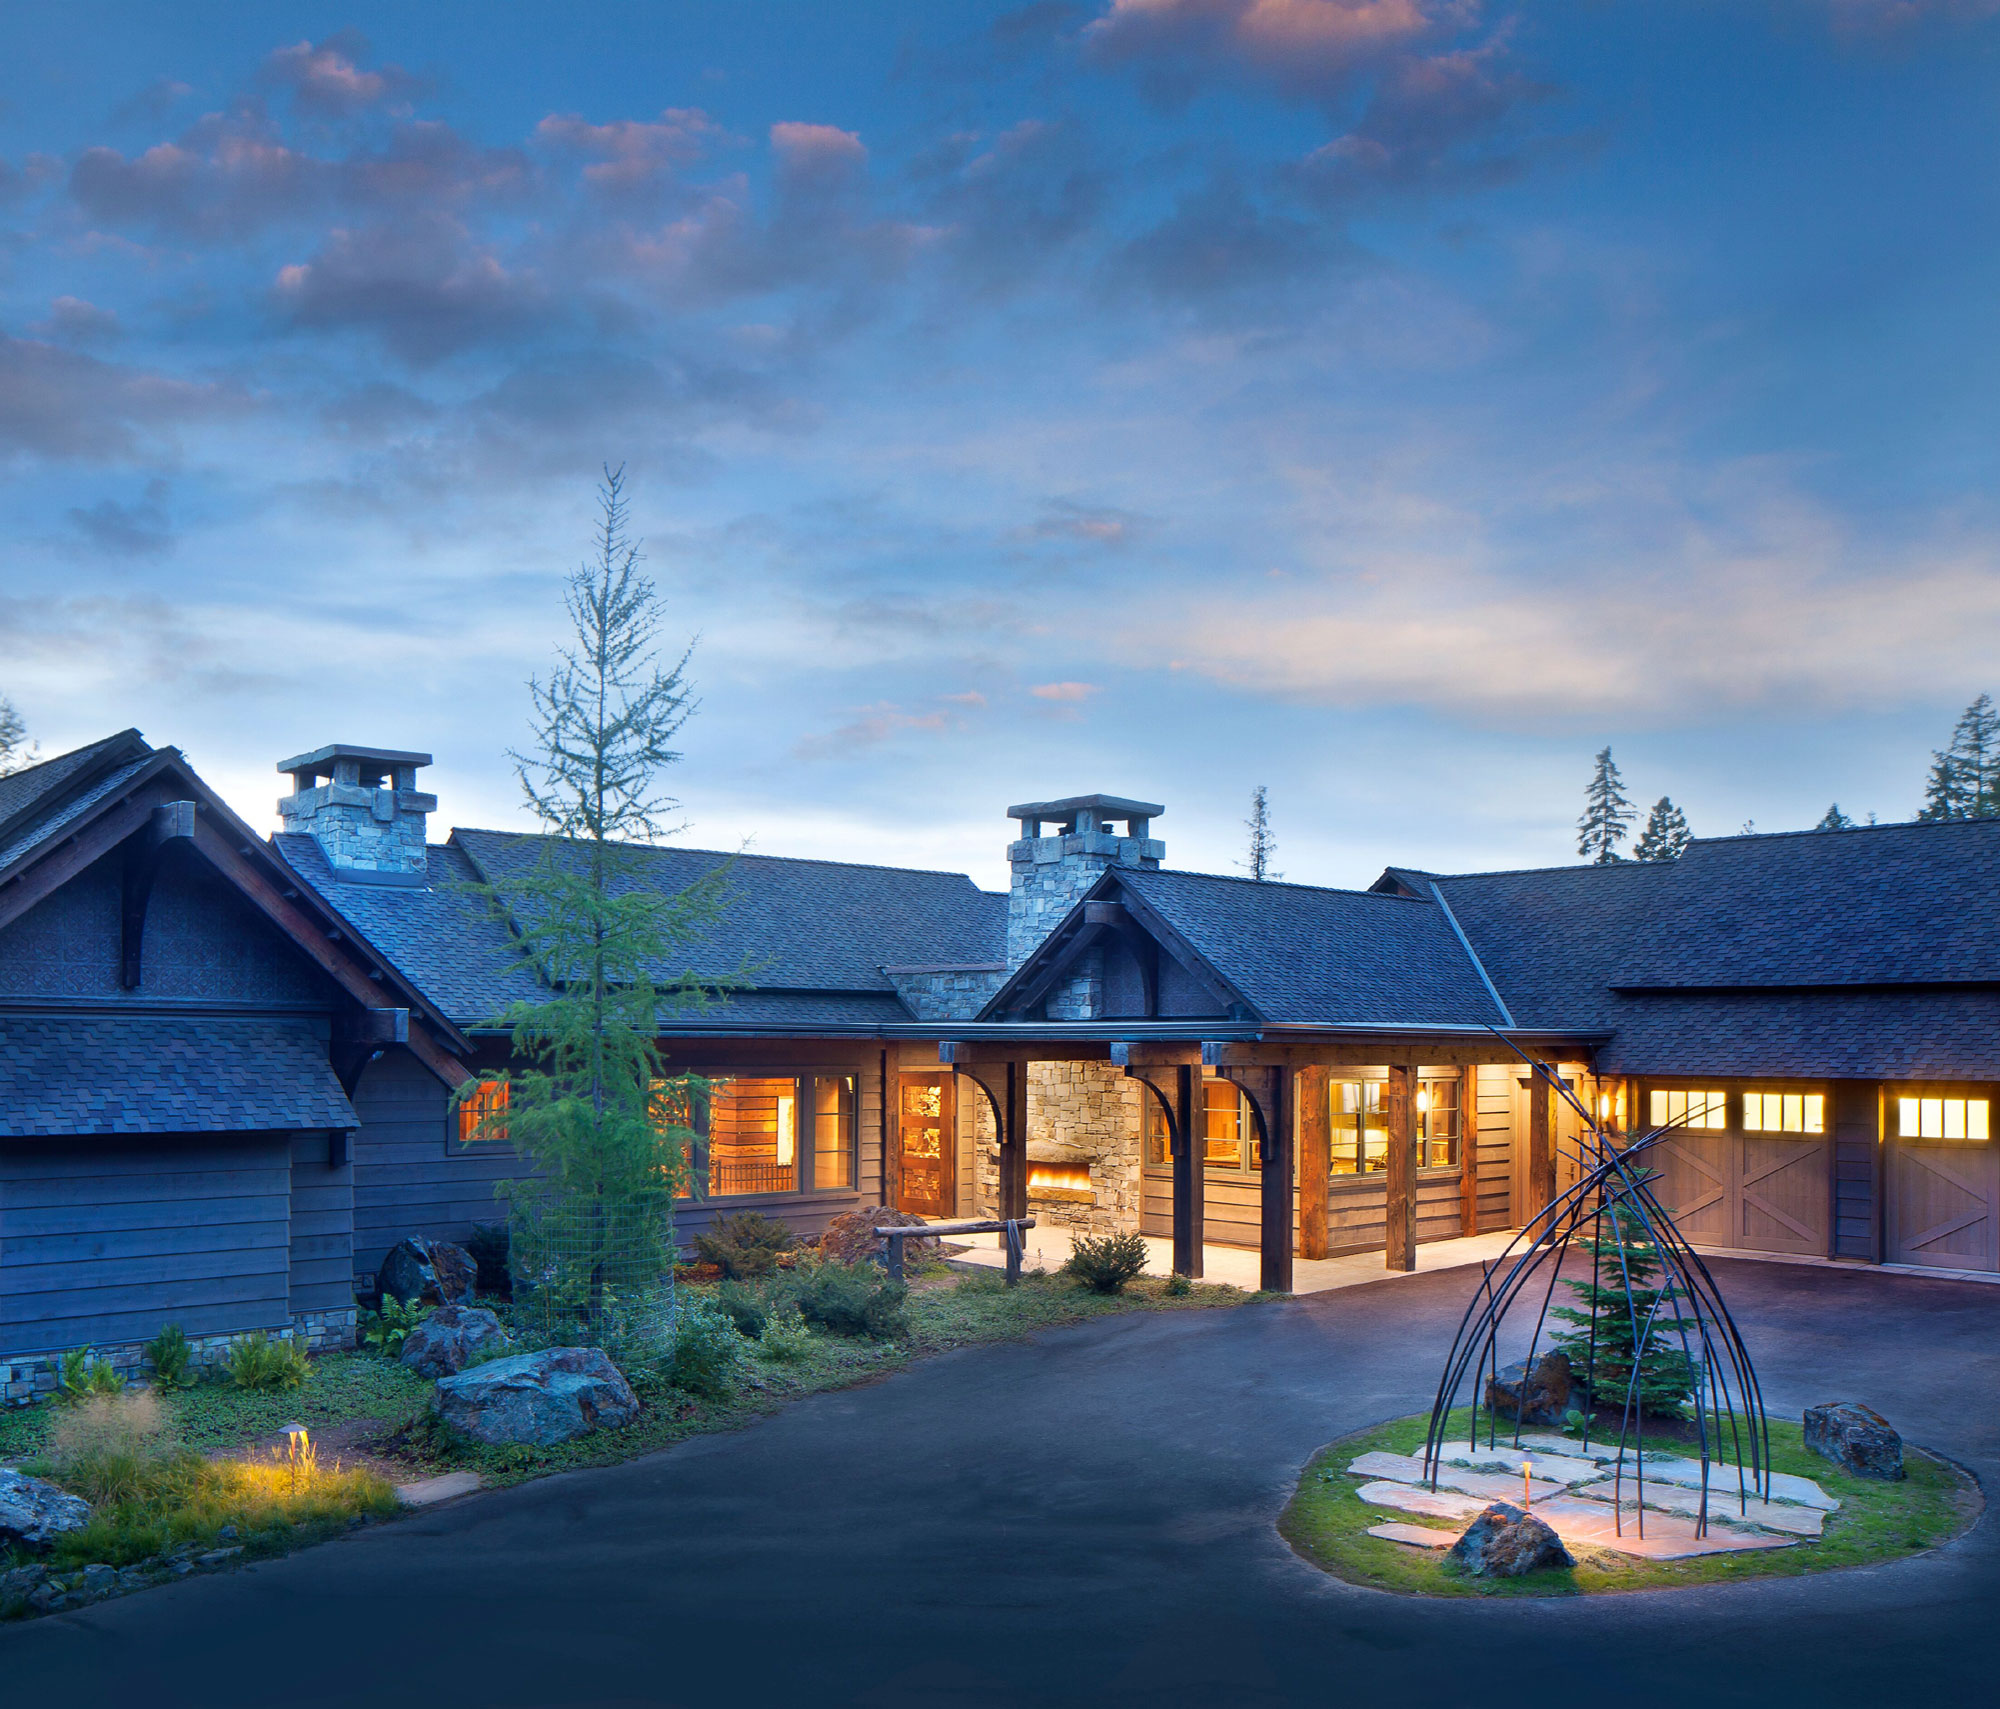 This four-acre estate is located in the private Iron Horse resort, minutes away from Glacier National Park and world-class skiing at Whitefish Mountain Resort.